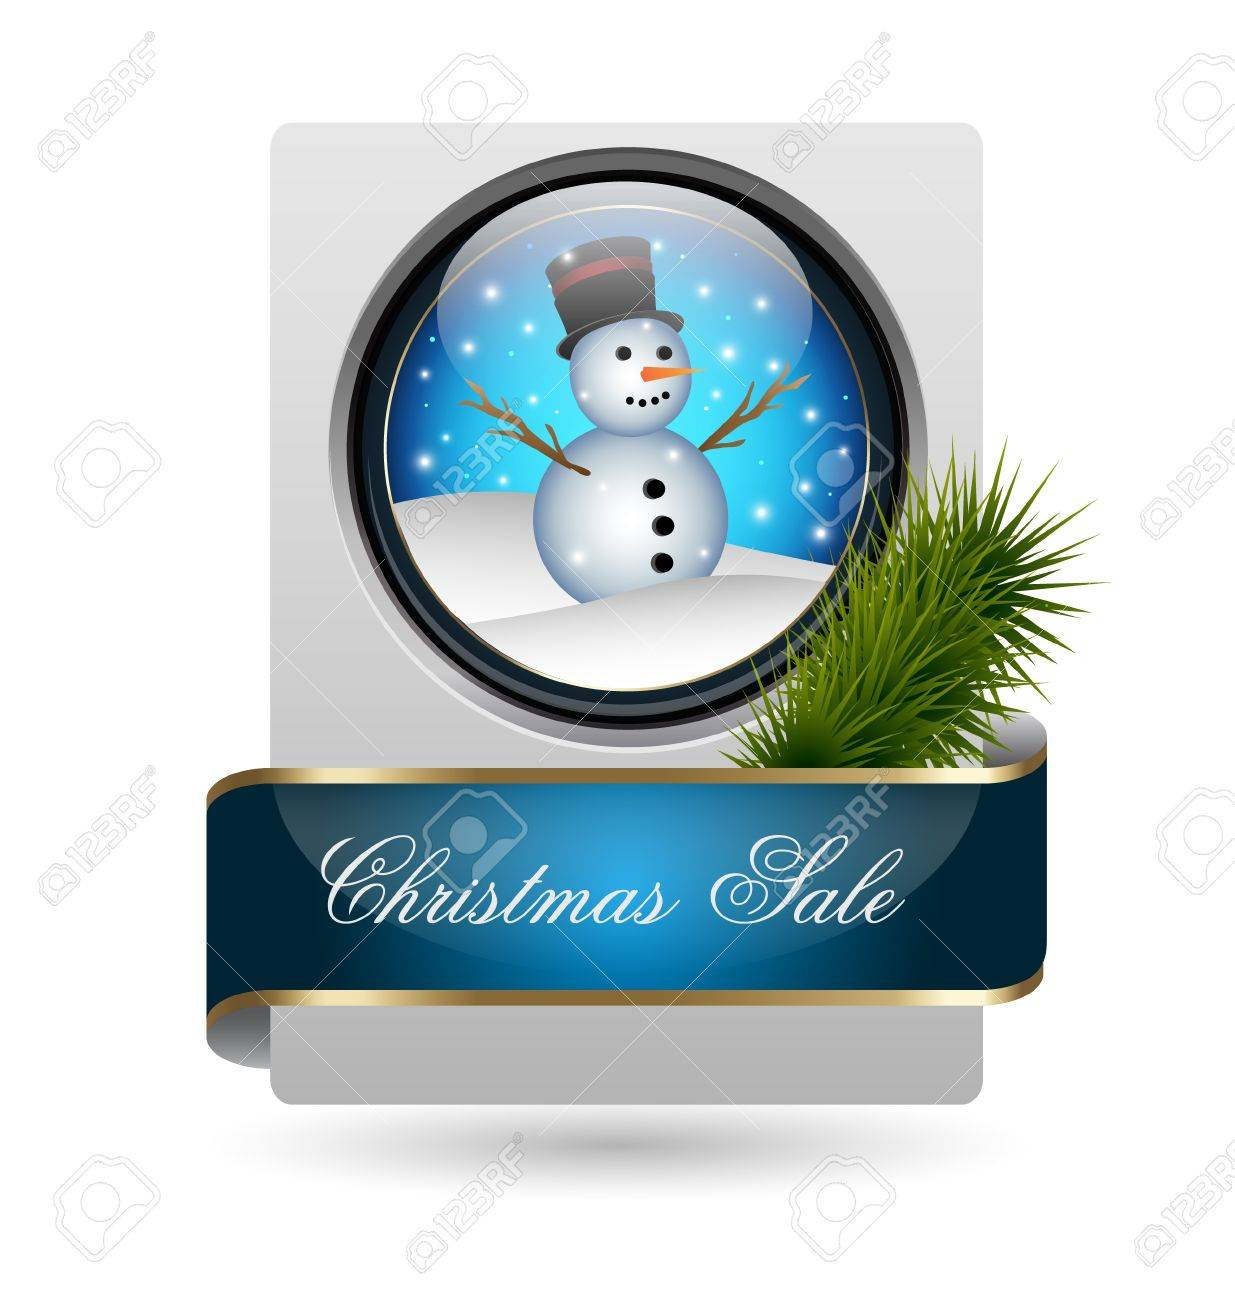 Vector illustration of Christmas sale card Stock Vector - 16701634